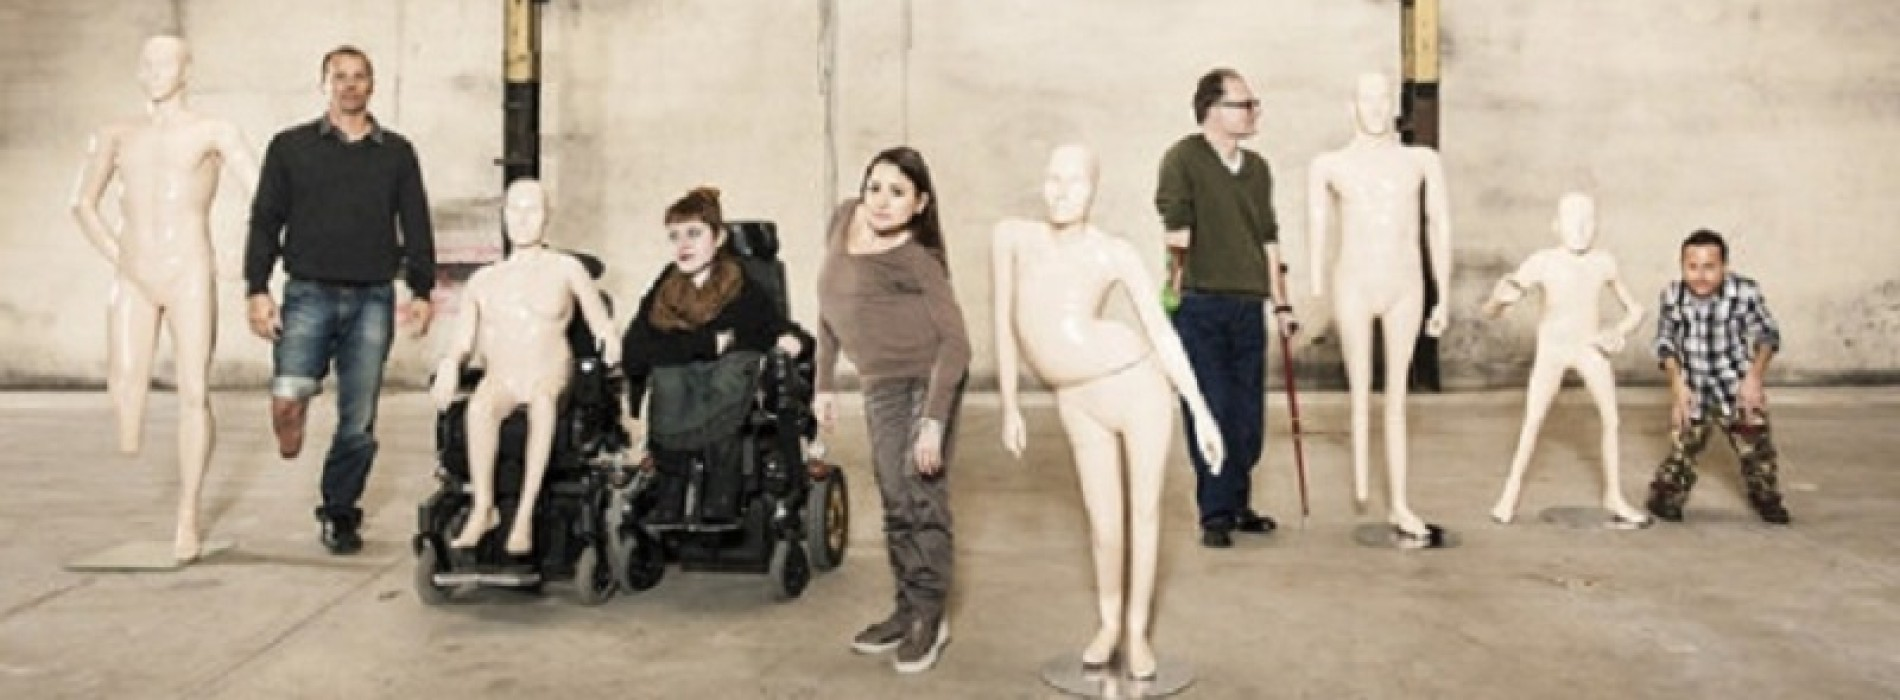 Disability and body image: fitting in when your body does not